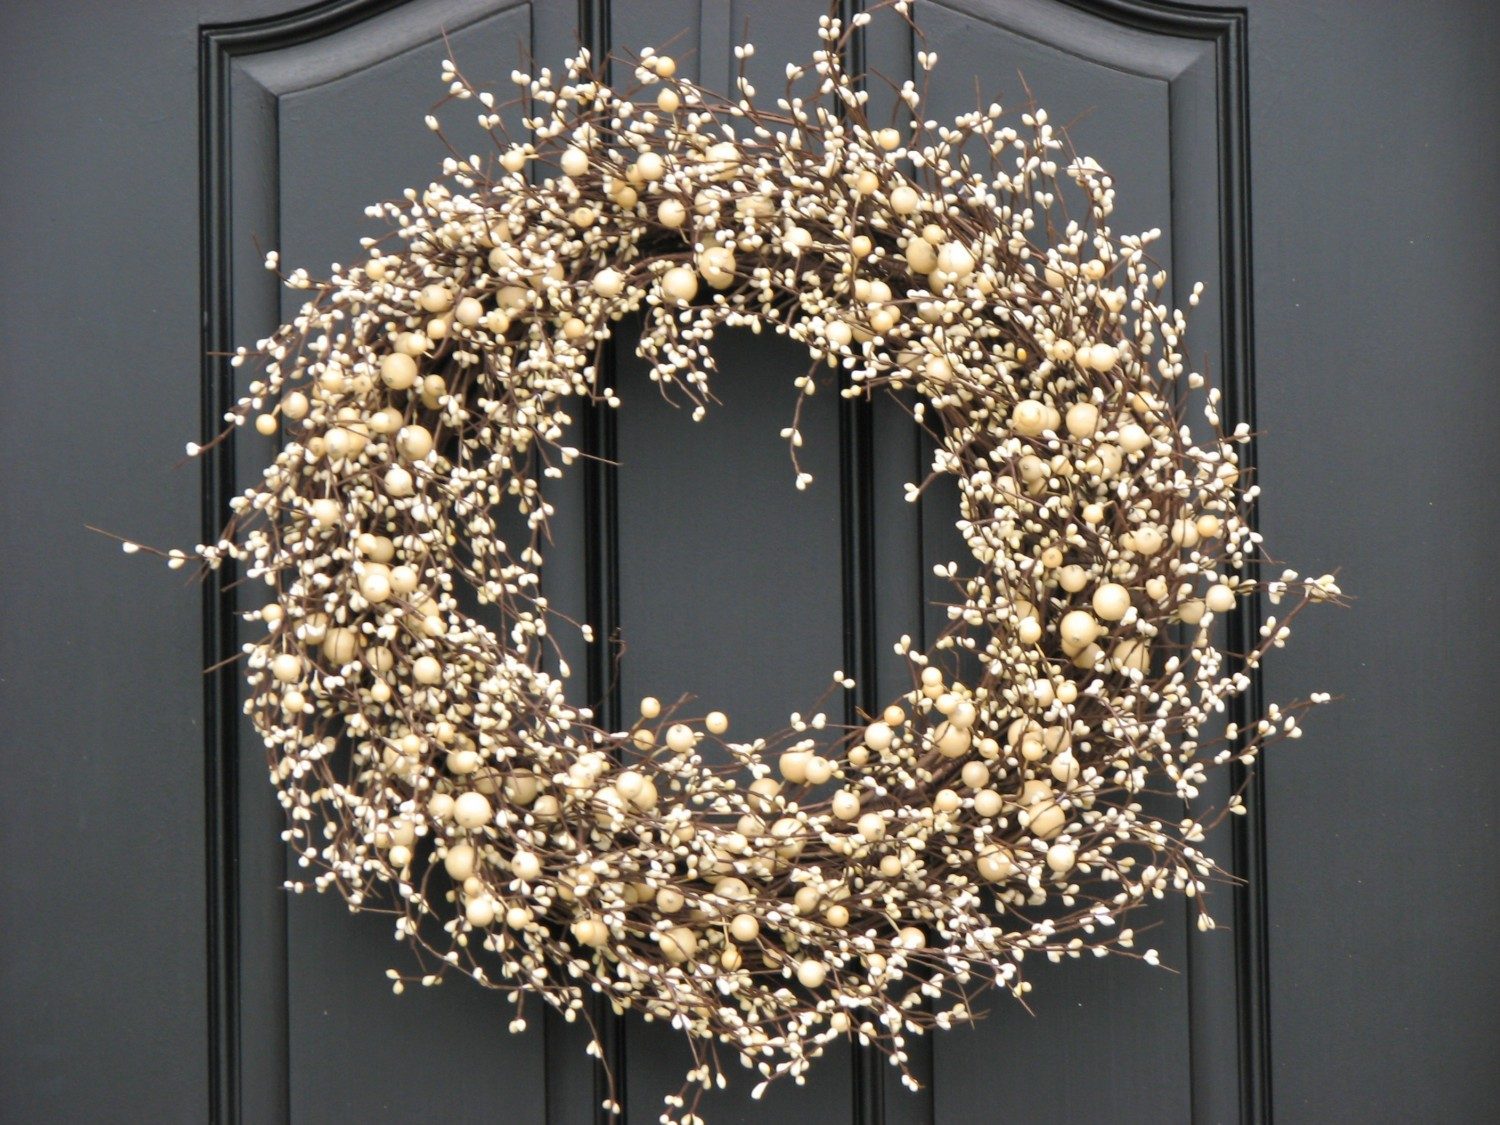 Le Meilleur Damask And Design The Best Christmas Wreaths On Etsy Ce Mois Ci